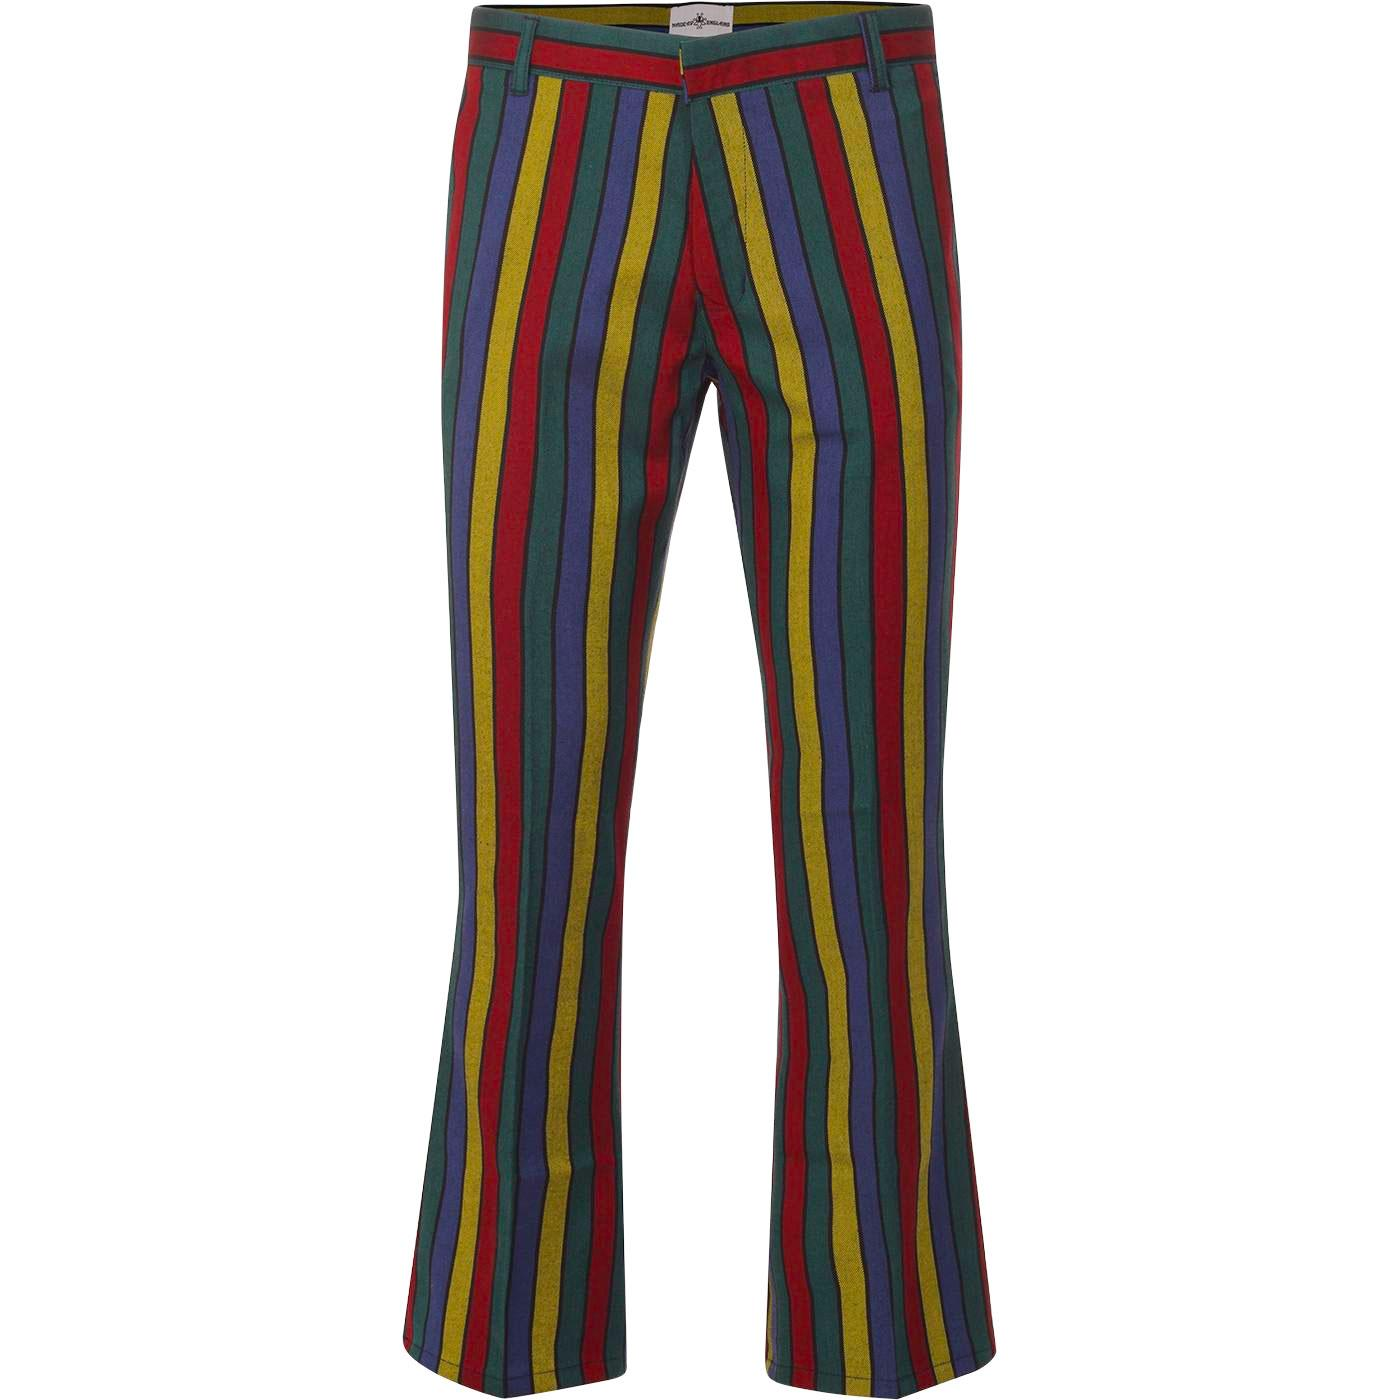 Madcap England Hendrix Stripe Retro 60s Psychedelic Bootcut Flared Trousers